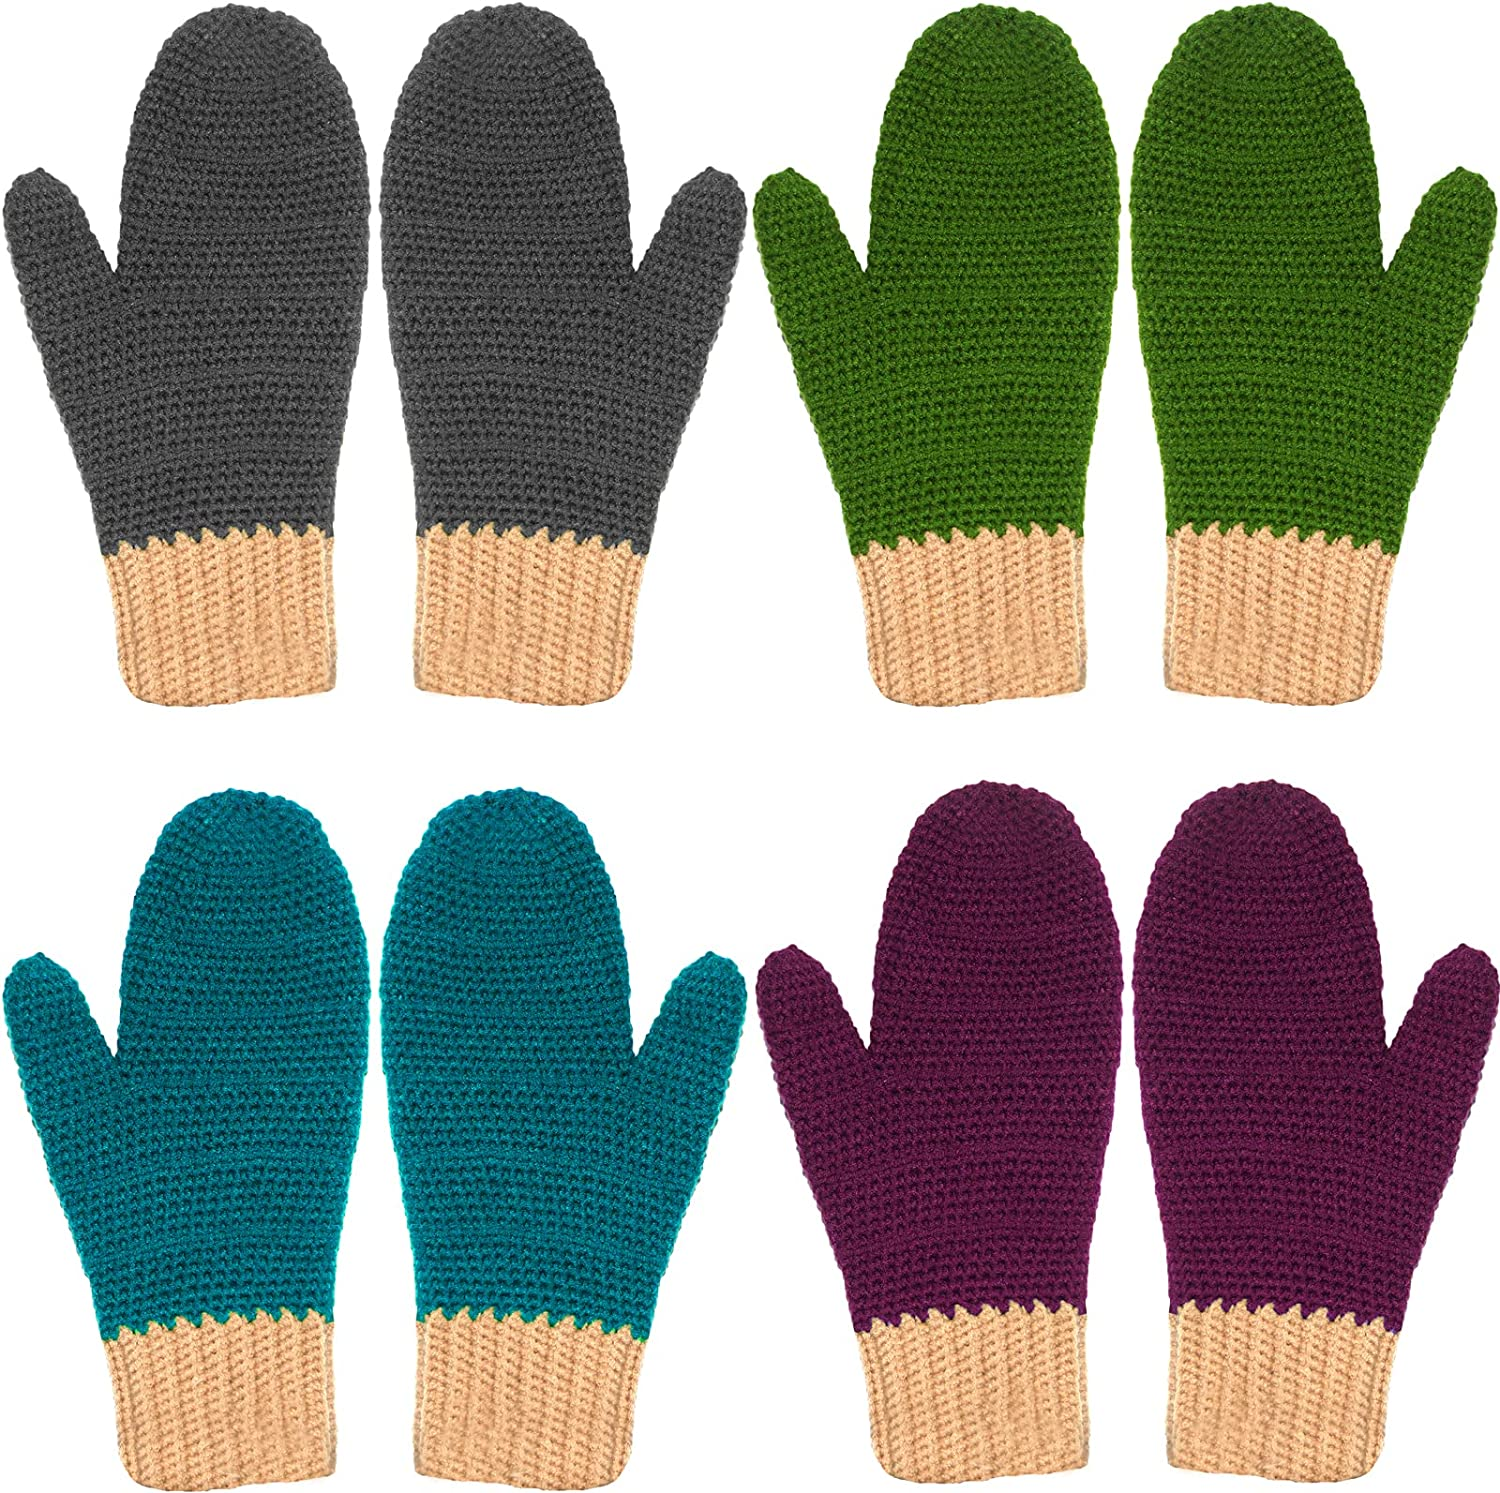 BIBITIME Unisex Adult Handmade Knitted Gloves Winter Cold Weather Warm Accessory